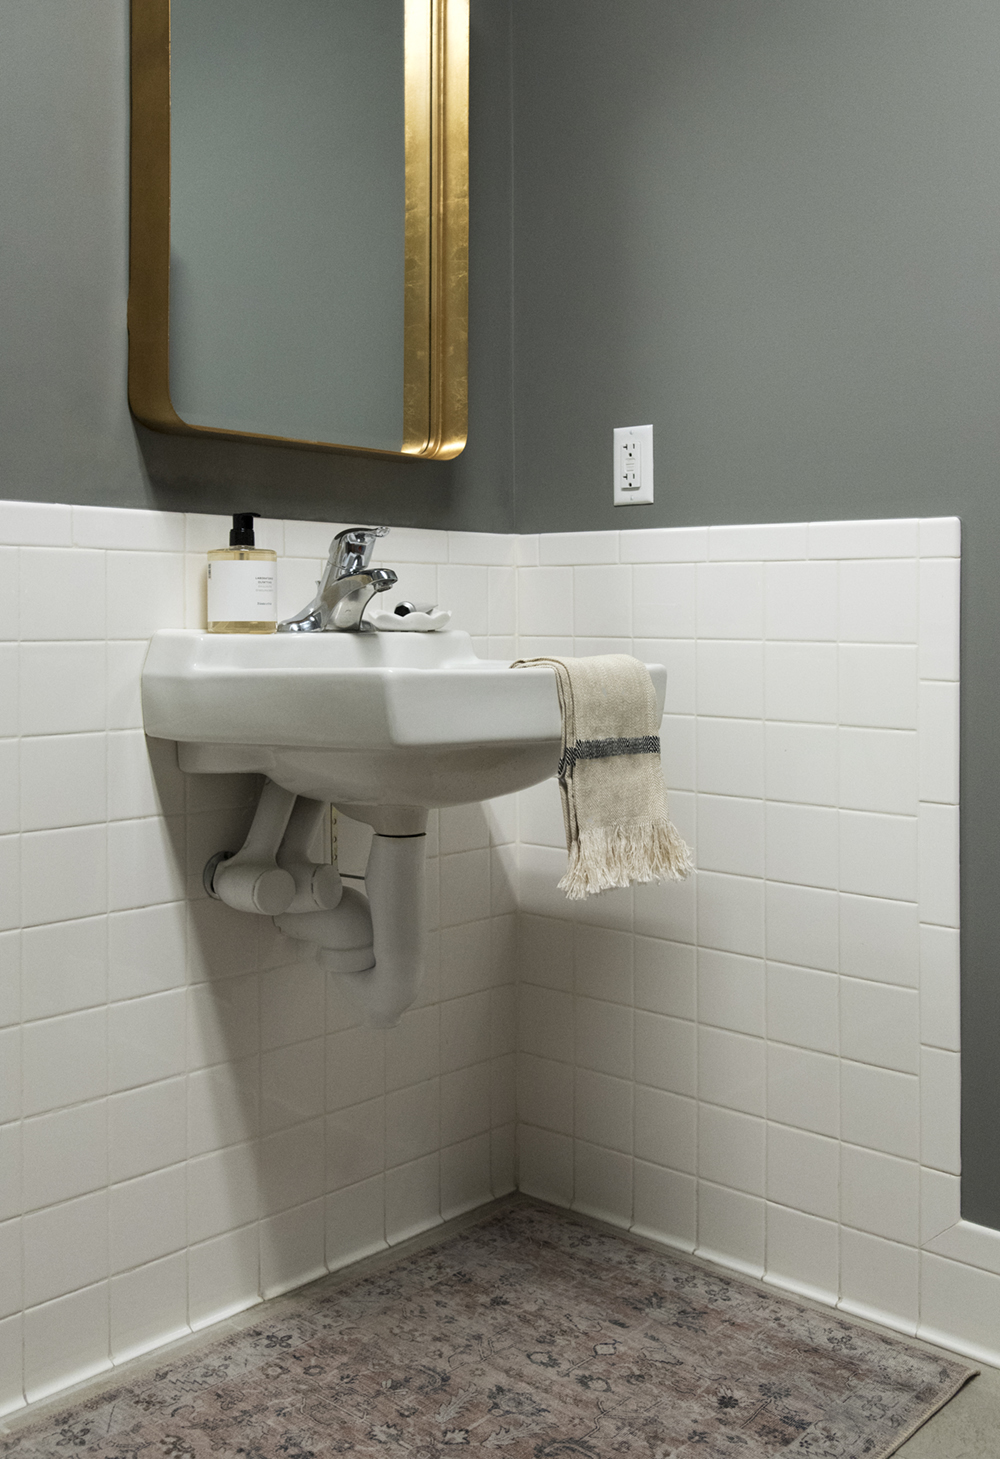 Office Bathroom Makeover & Seasonal Home Finds - roomfortuesday.com